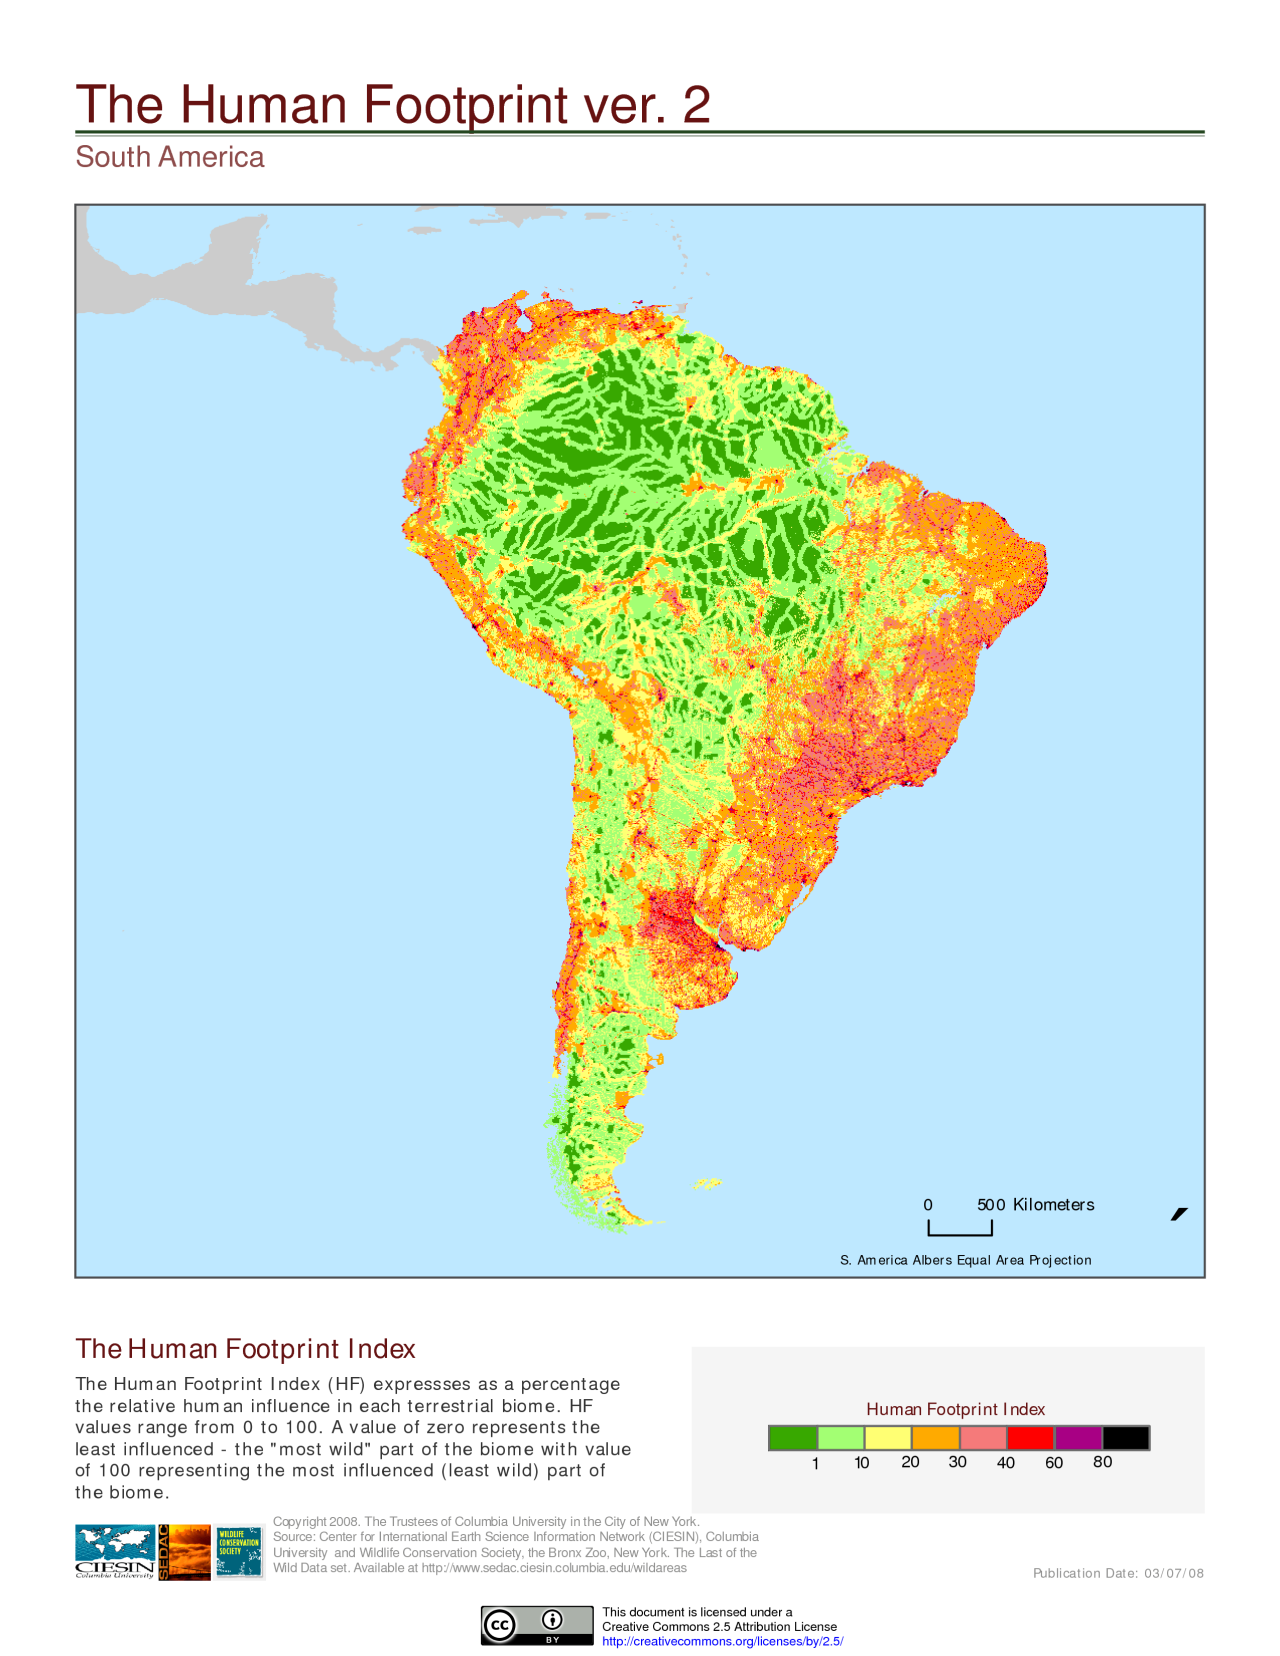 The Human Footprint On South America